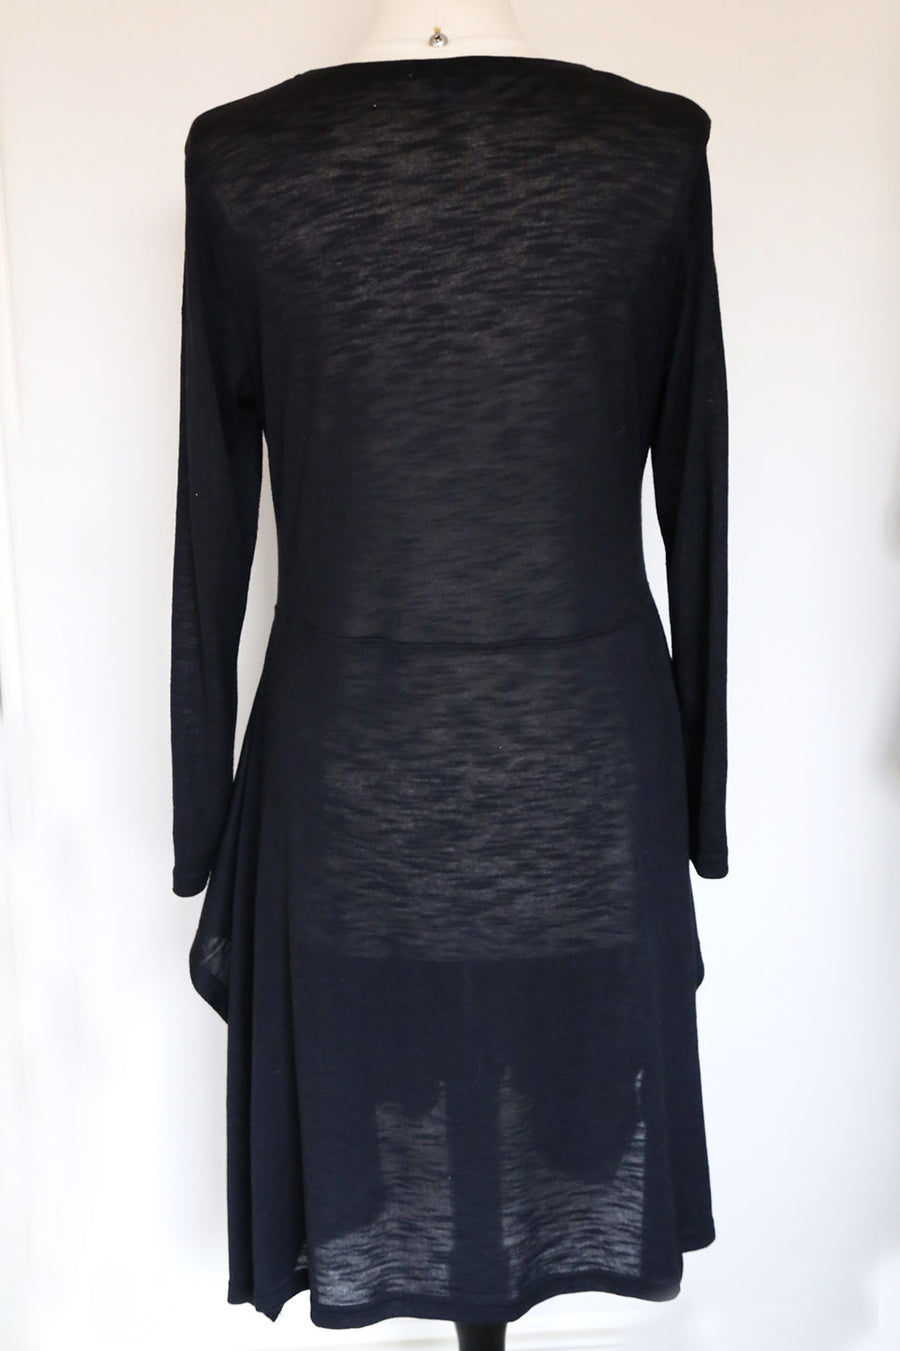 PRELOVED - Full Moon Black Dress